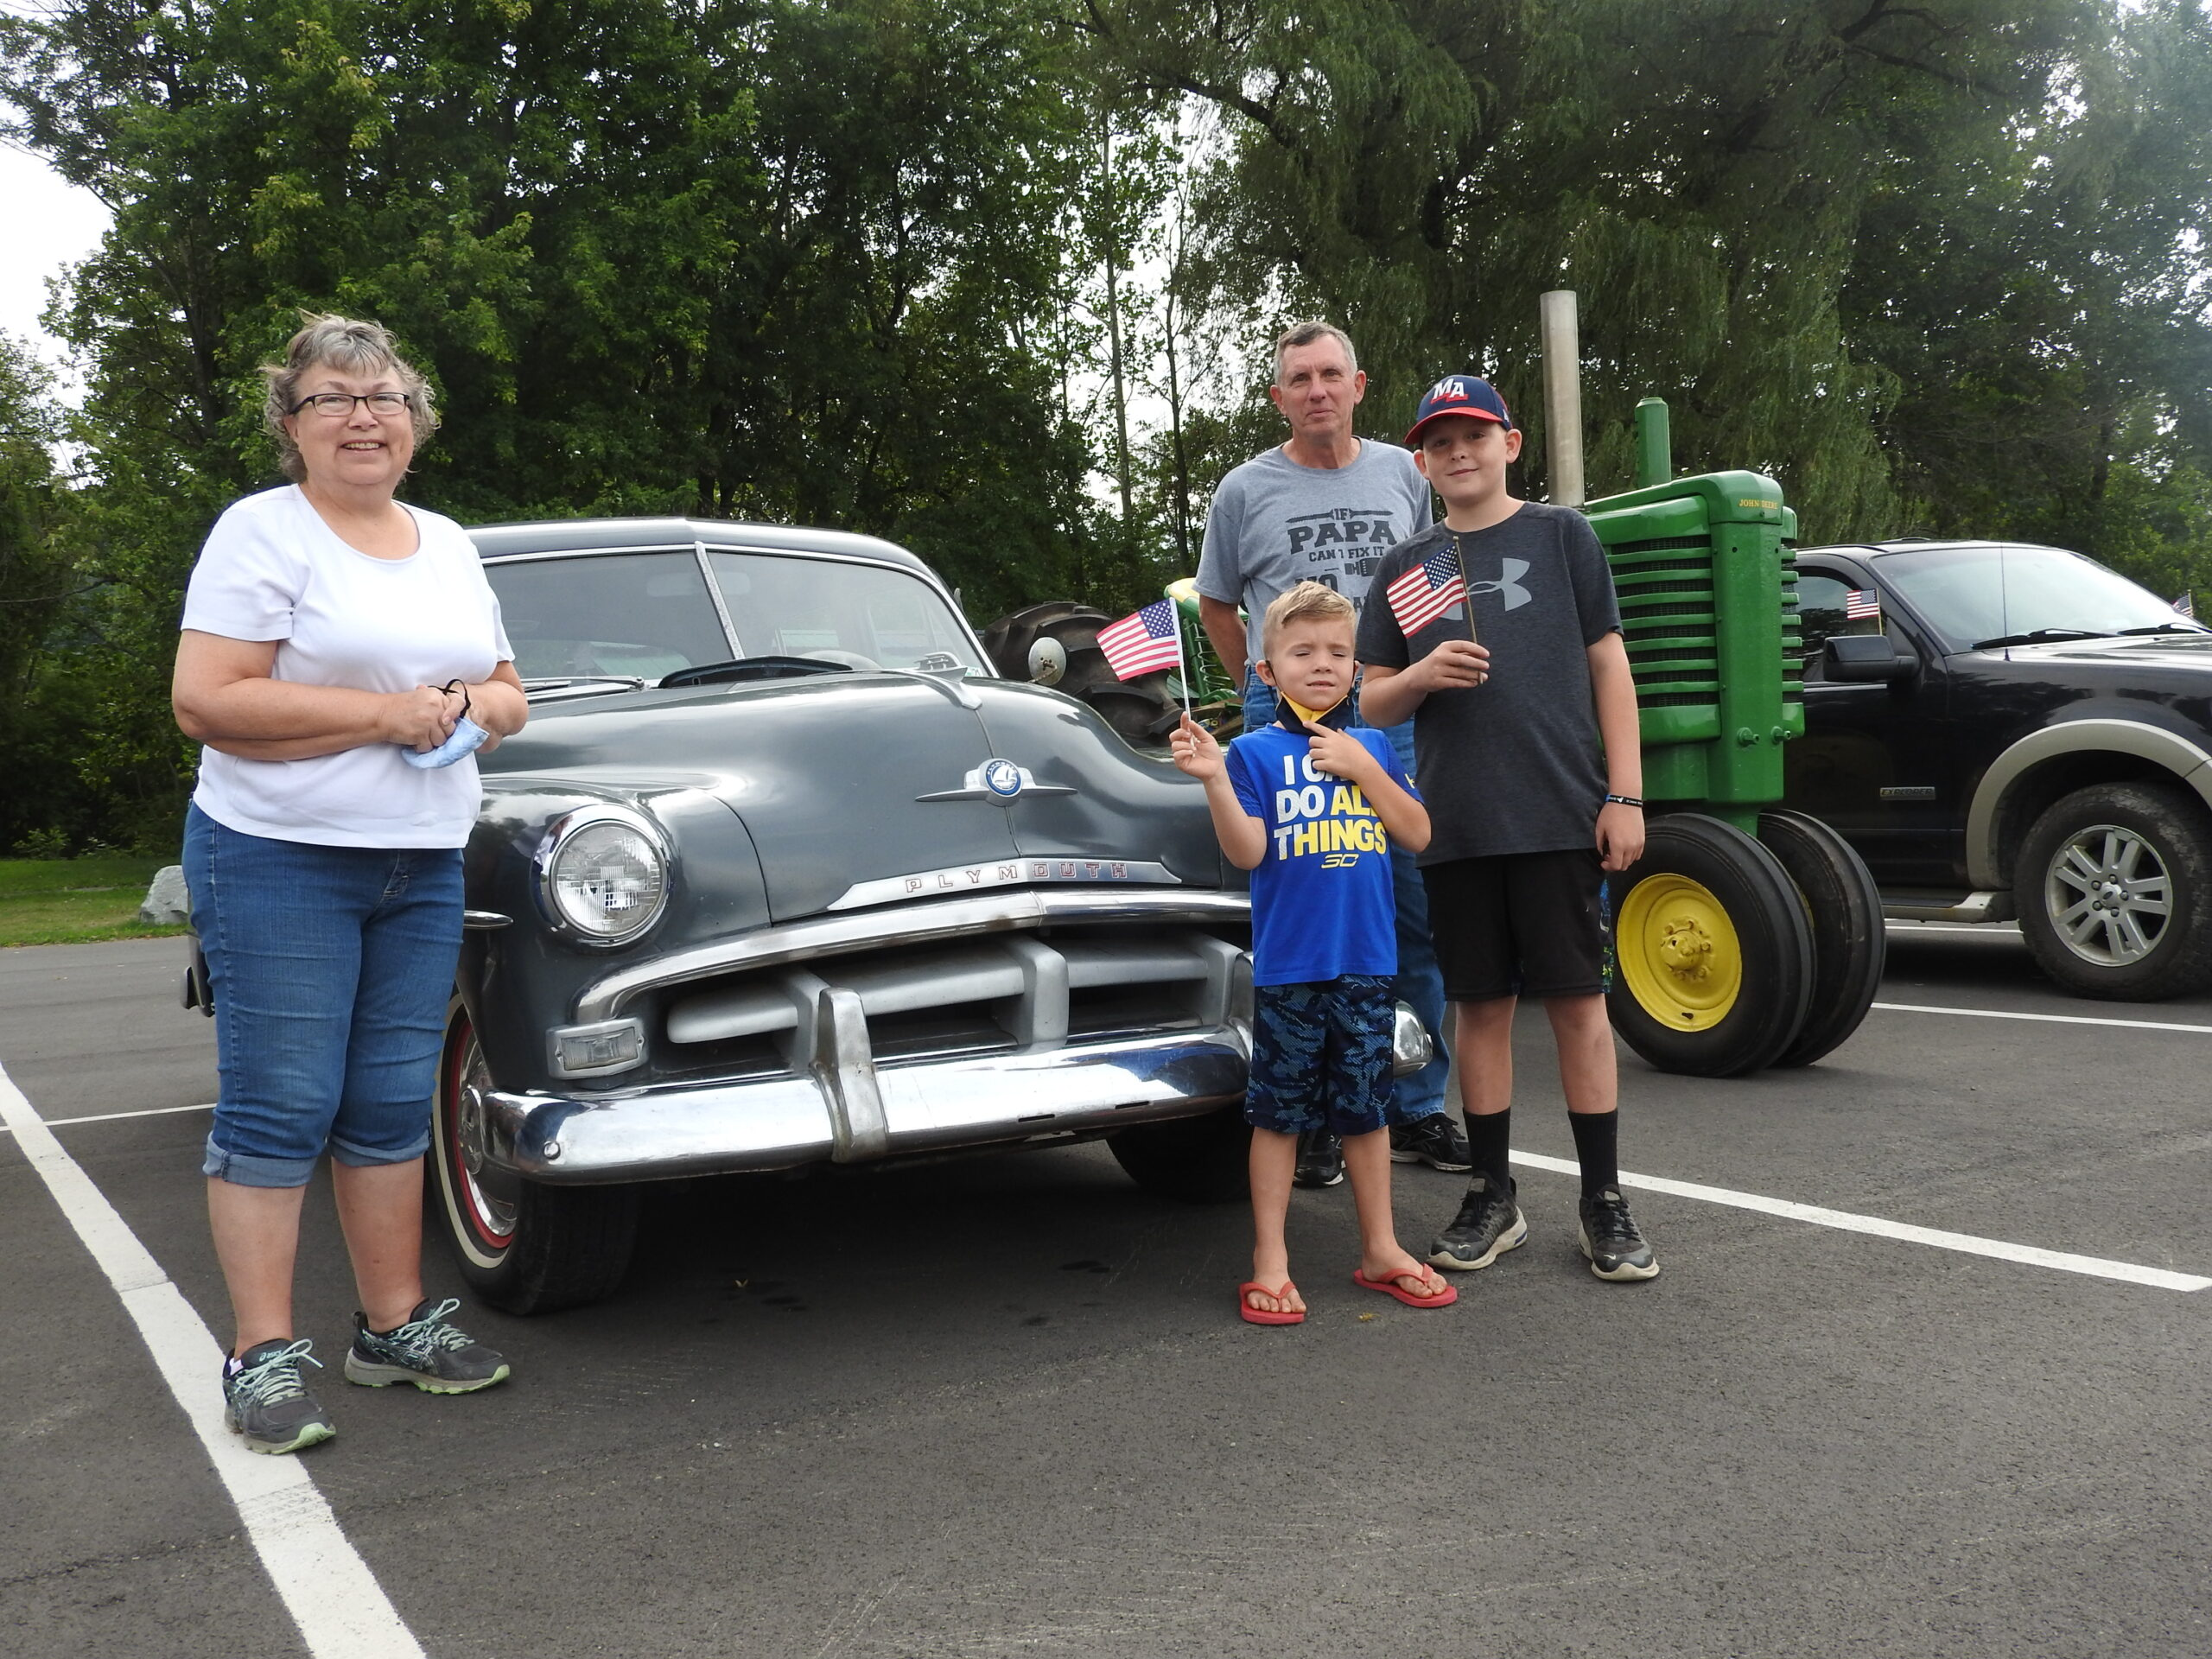 Hankering for a summertime parade